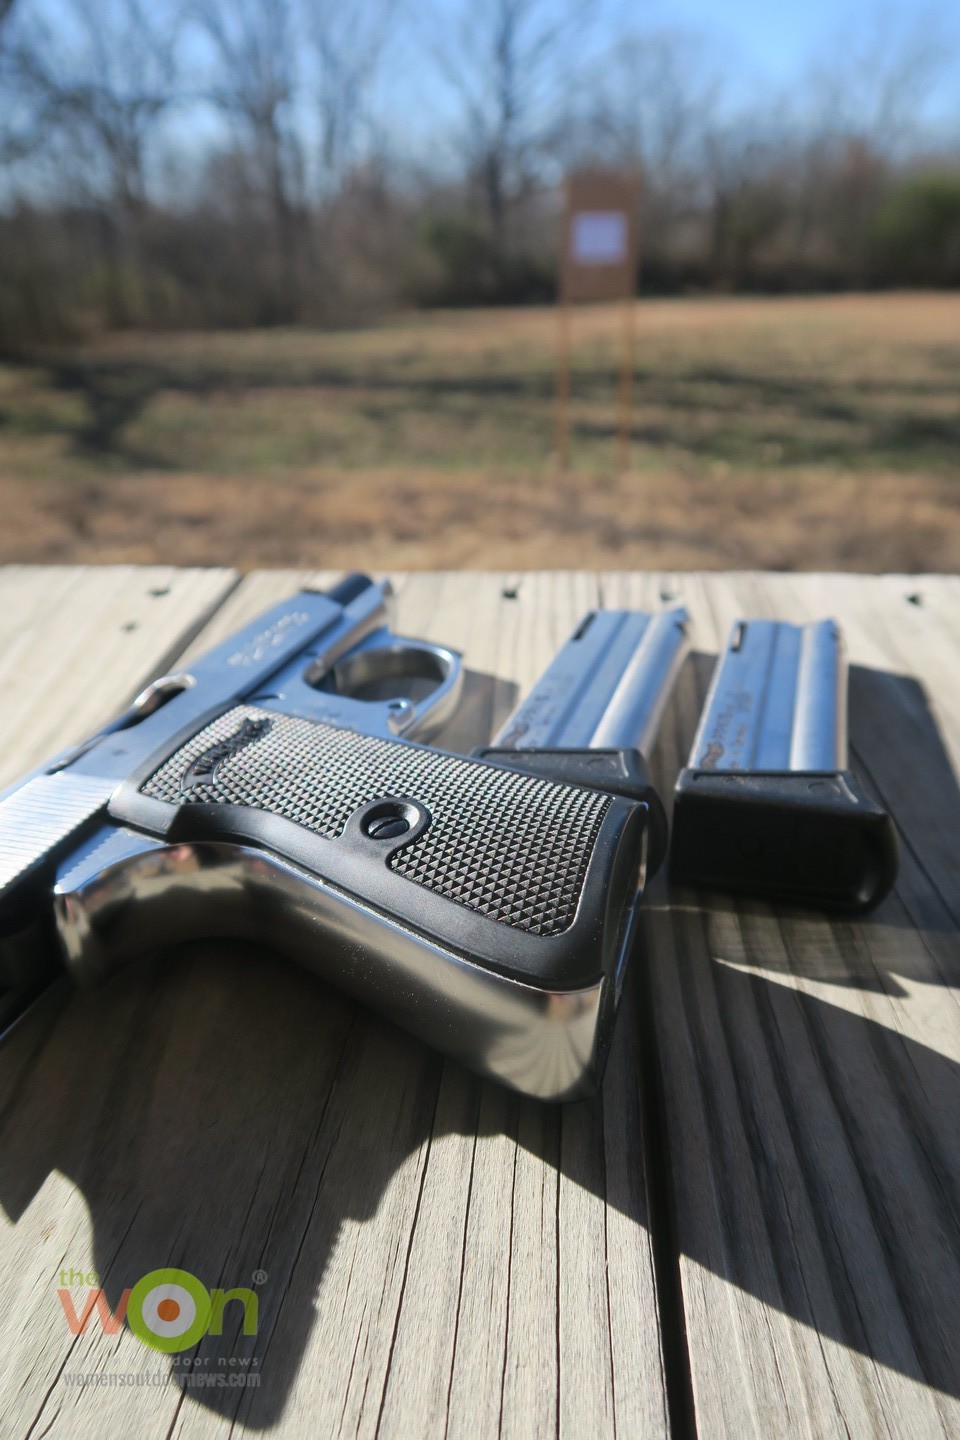 walther PPK/s 22 on range